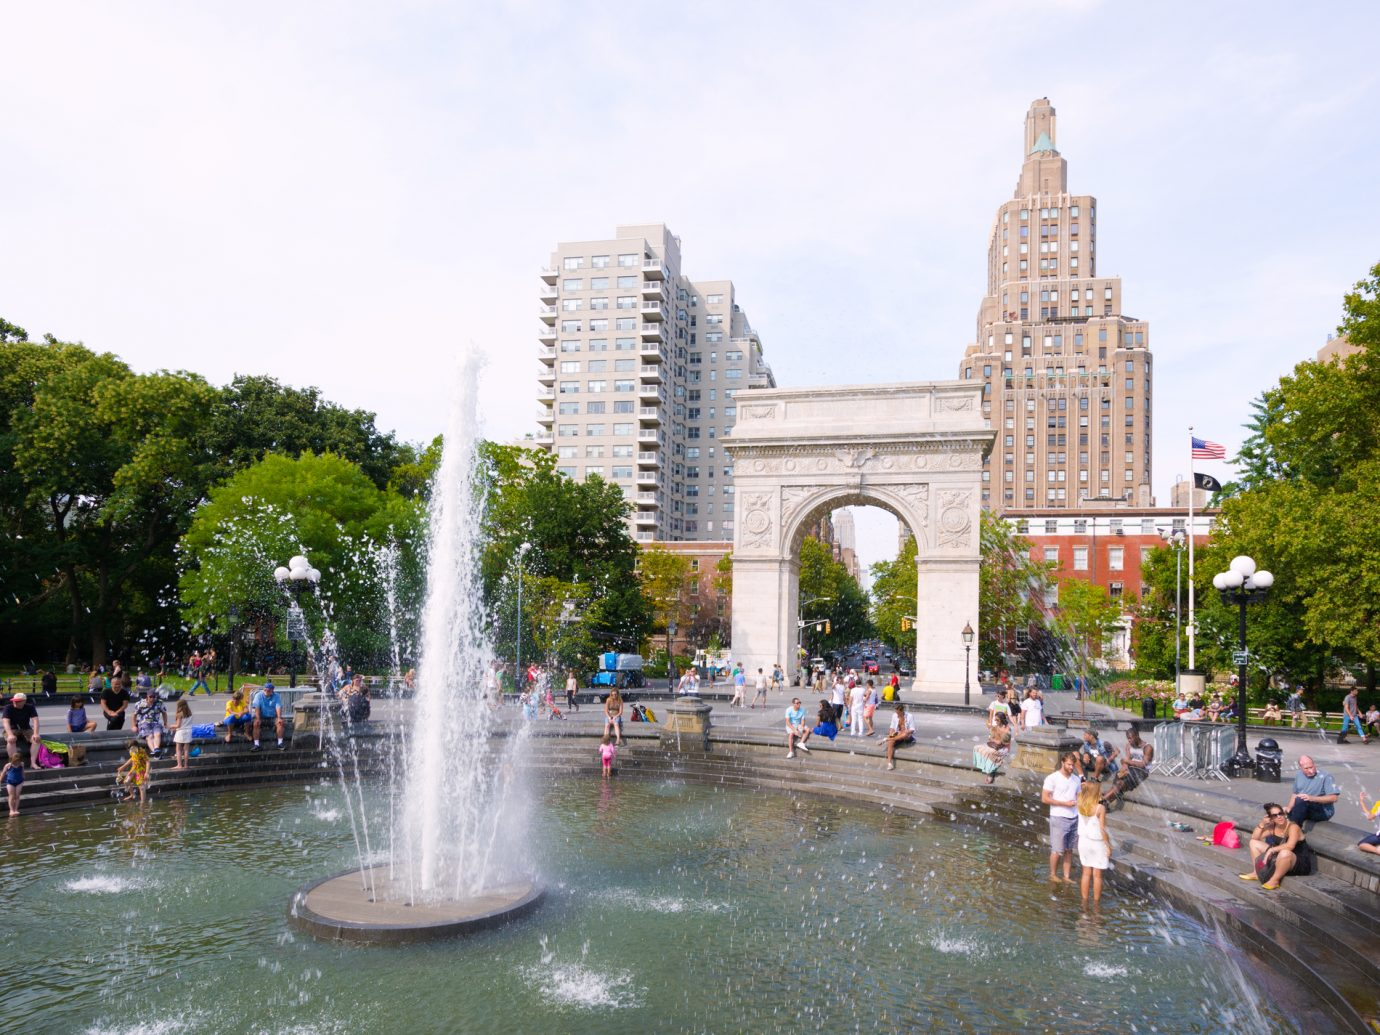 People meander about the fountain at Washington Square Park near the Washington Square Arch at Greenwich Village in the Manhattan borough of New York City.